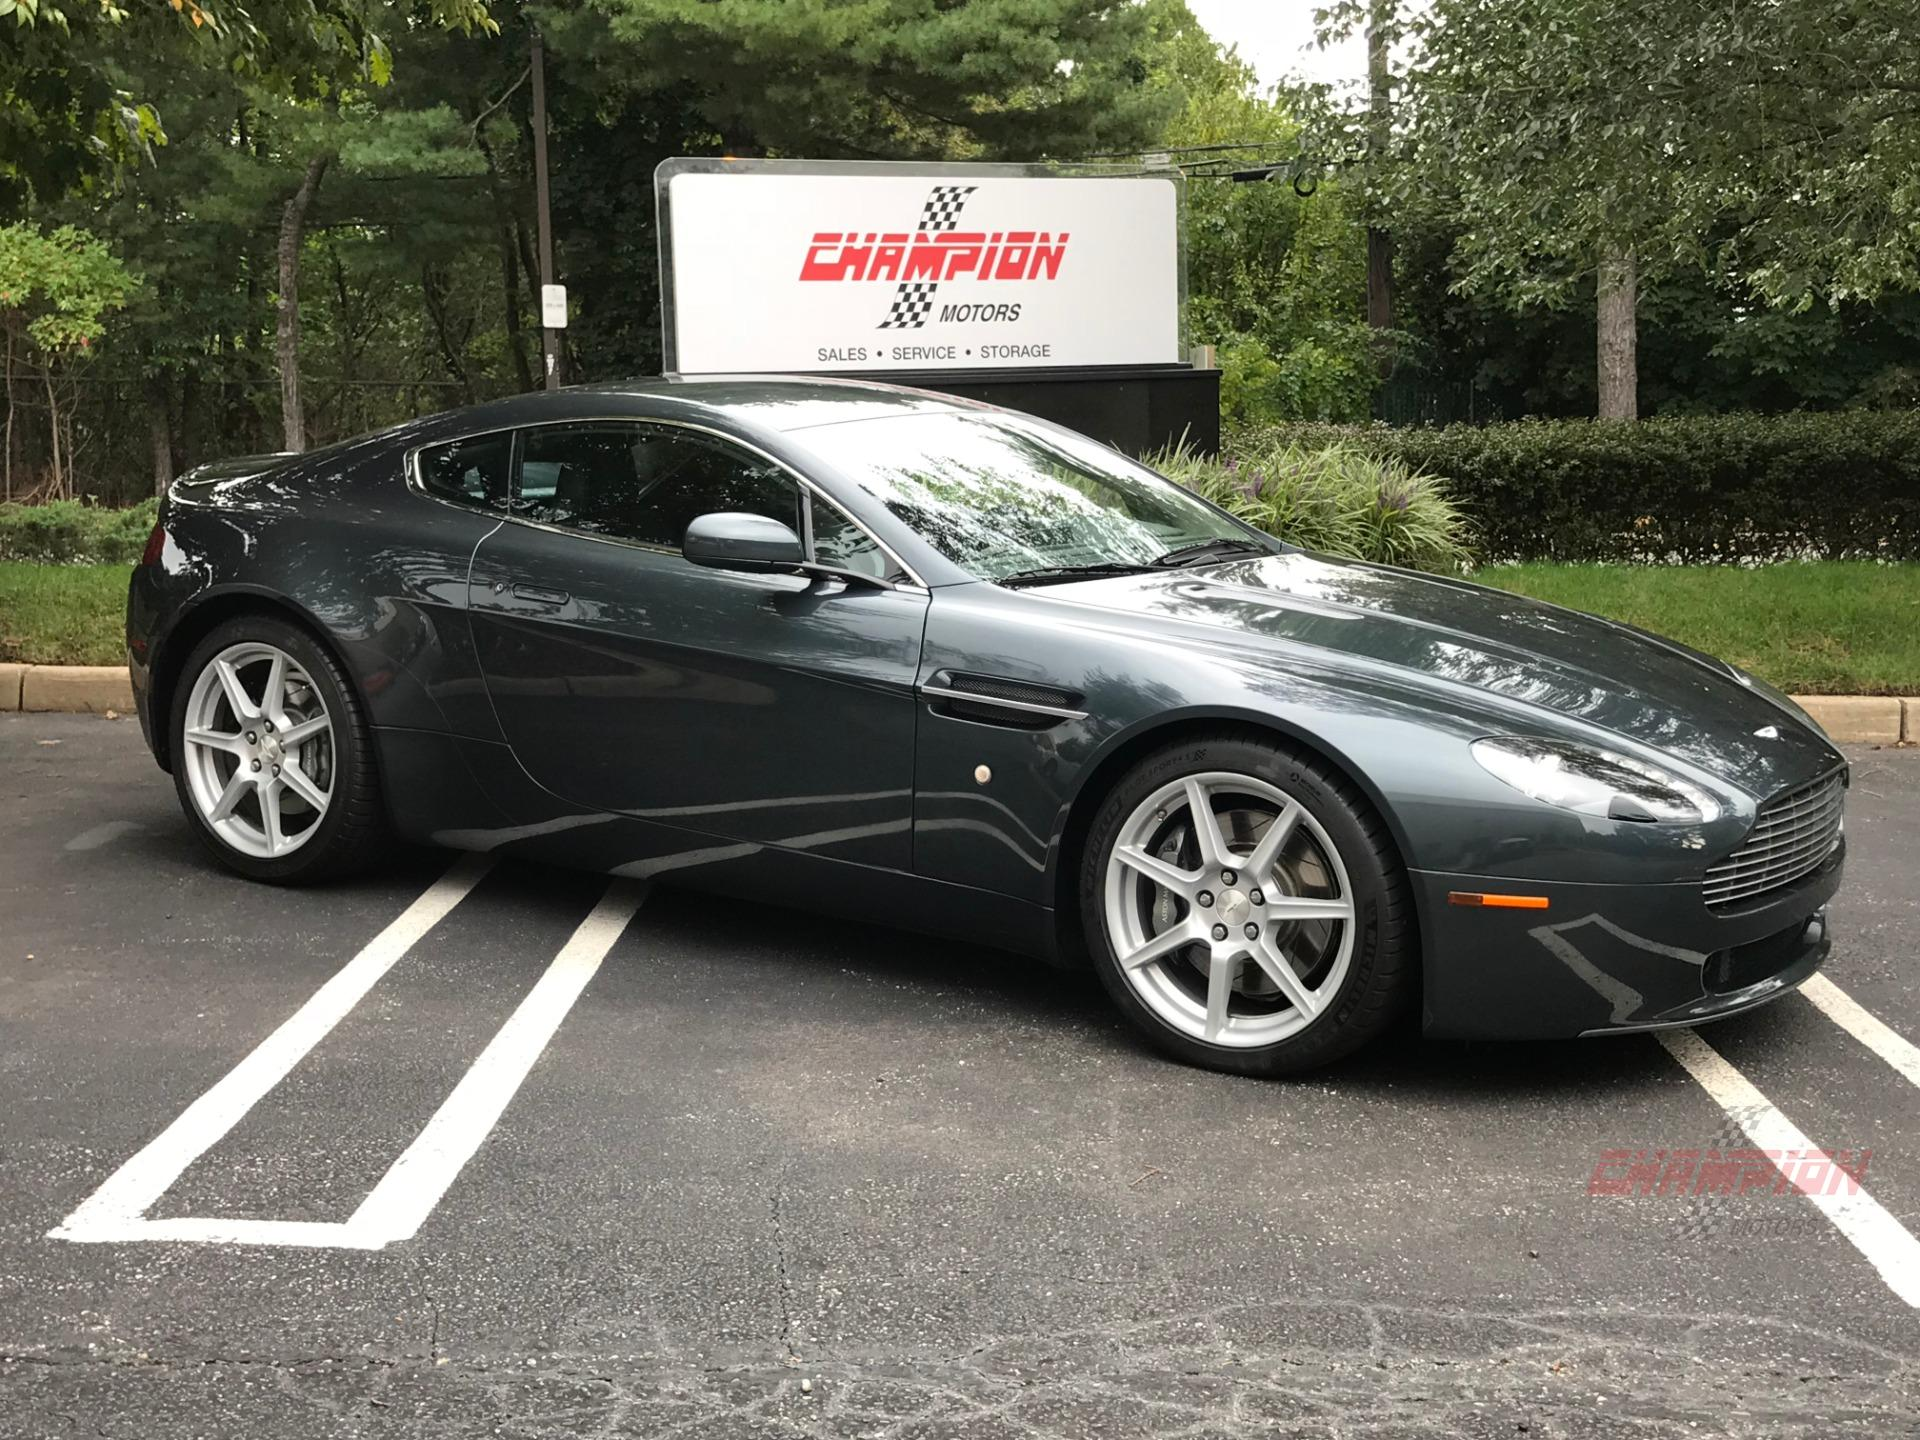 2008 Aston Martin V8 Vantage Champion Motors International L Luxury Classic Vehicle Dealership New York L Rolls Royce Bentley Ferrari Porsche Aston Martin